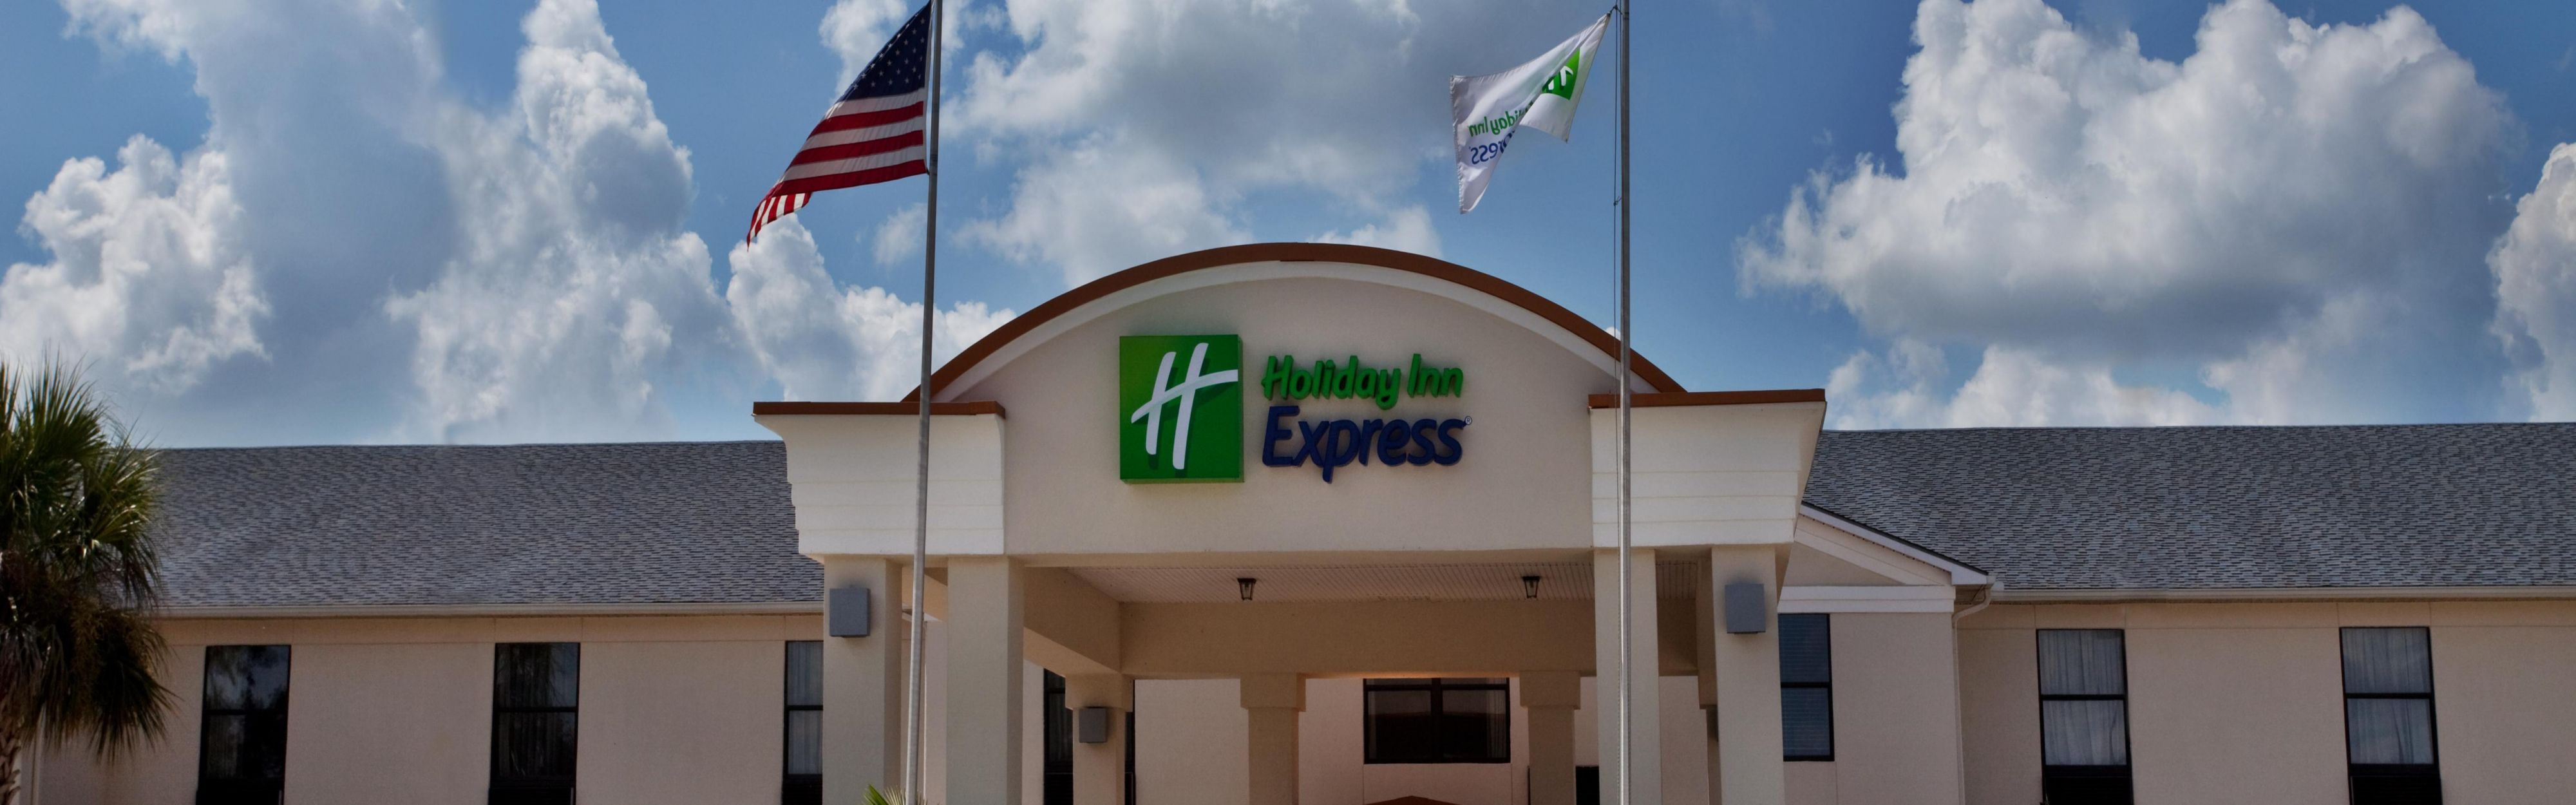 Holiday Inn Express Breaux Bridge/Henderson image 0